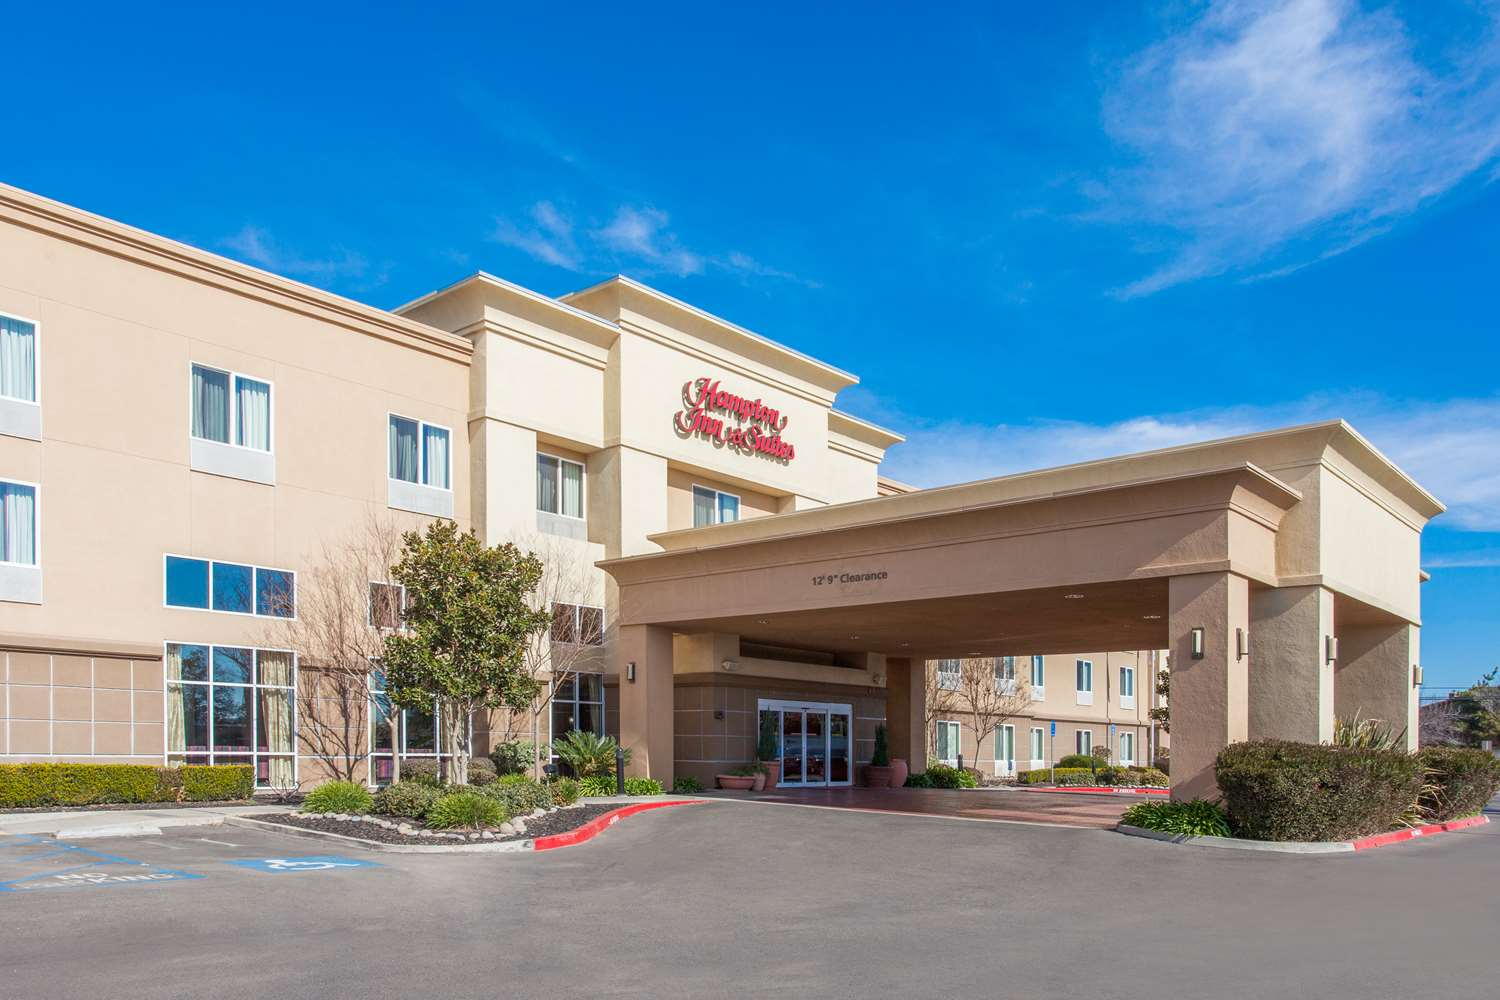 Hampton Inn - Suites Merced